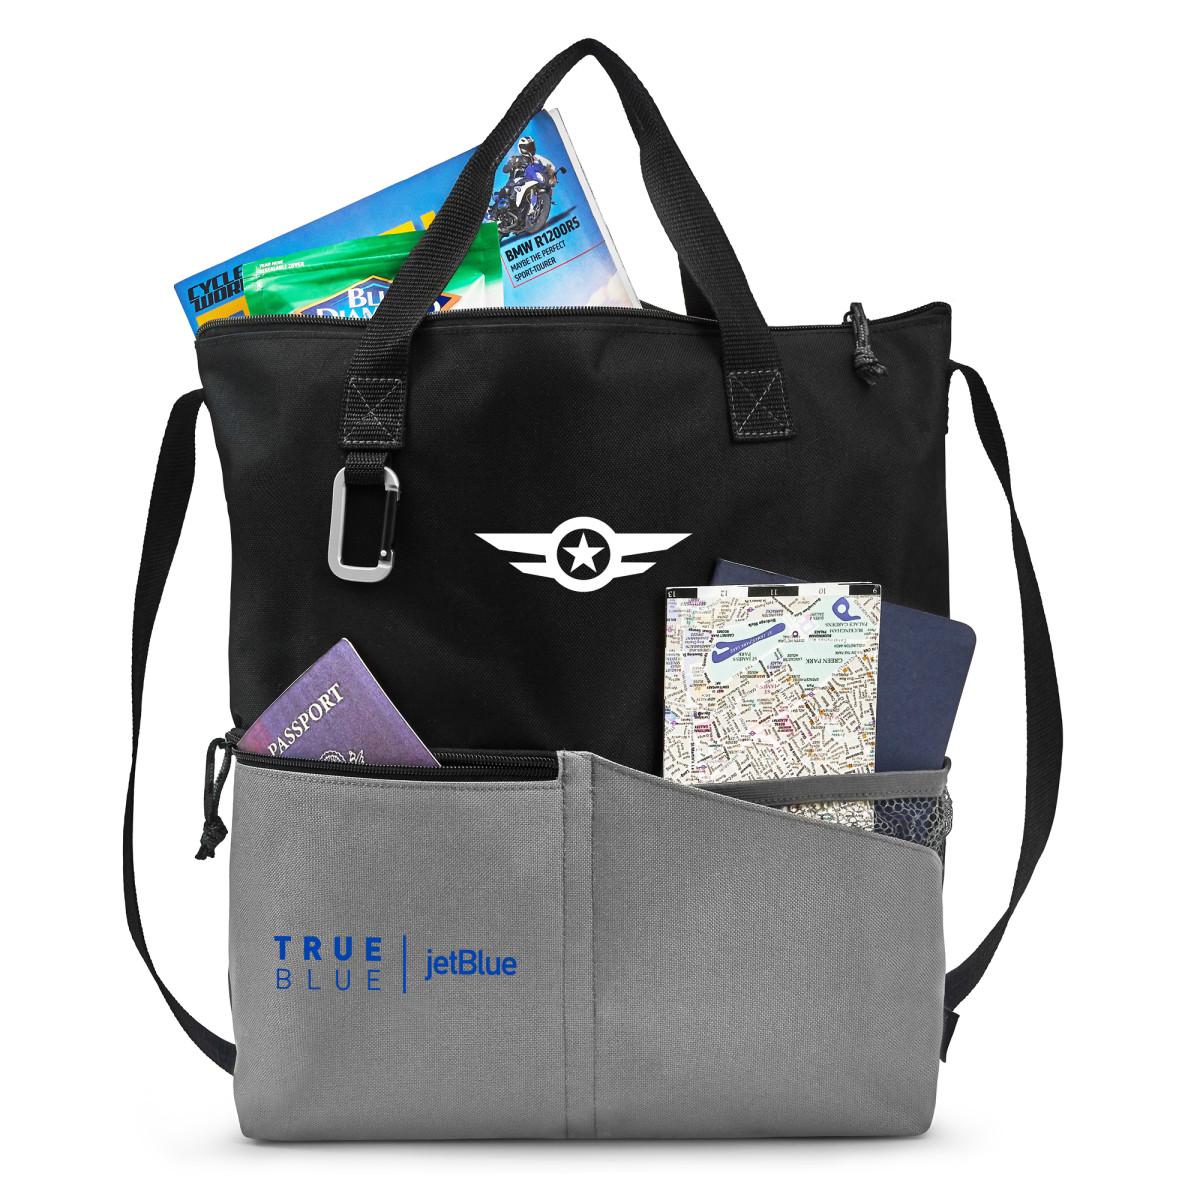 Gemline 1647 - Synergy All-Purpose Tote